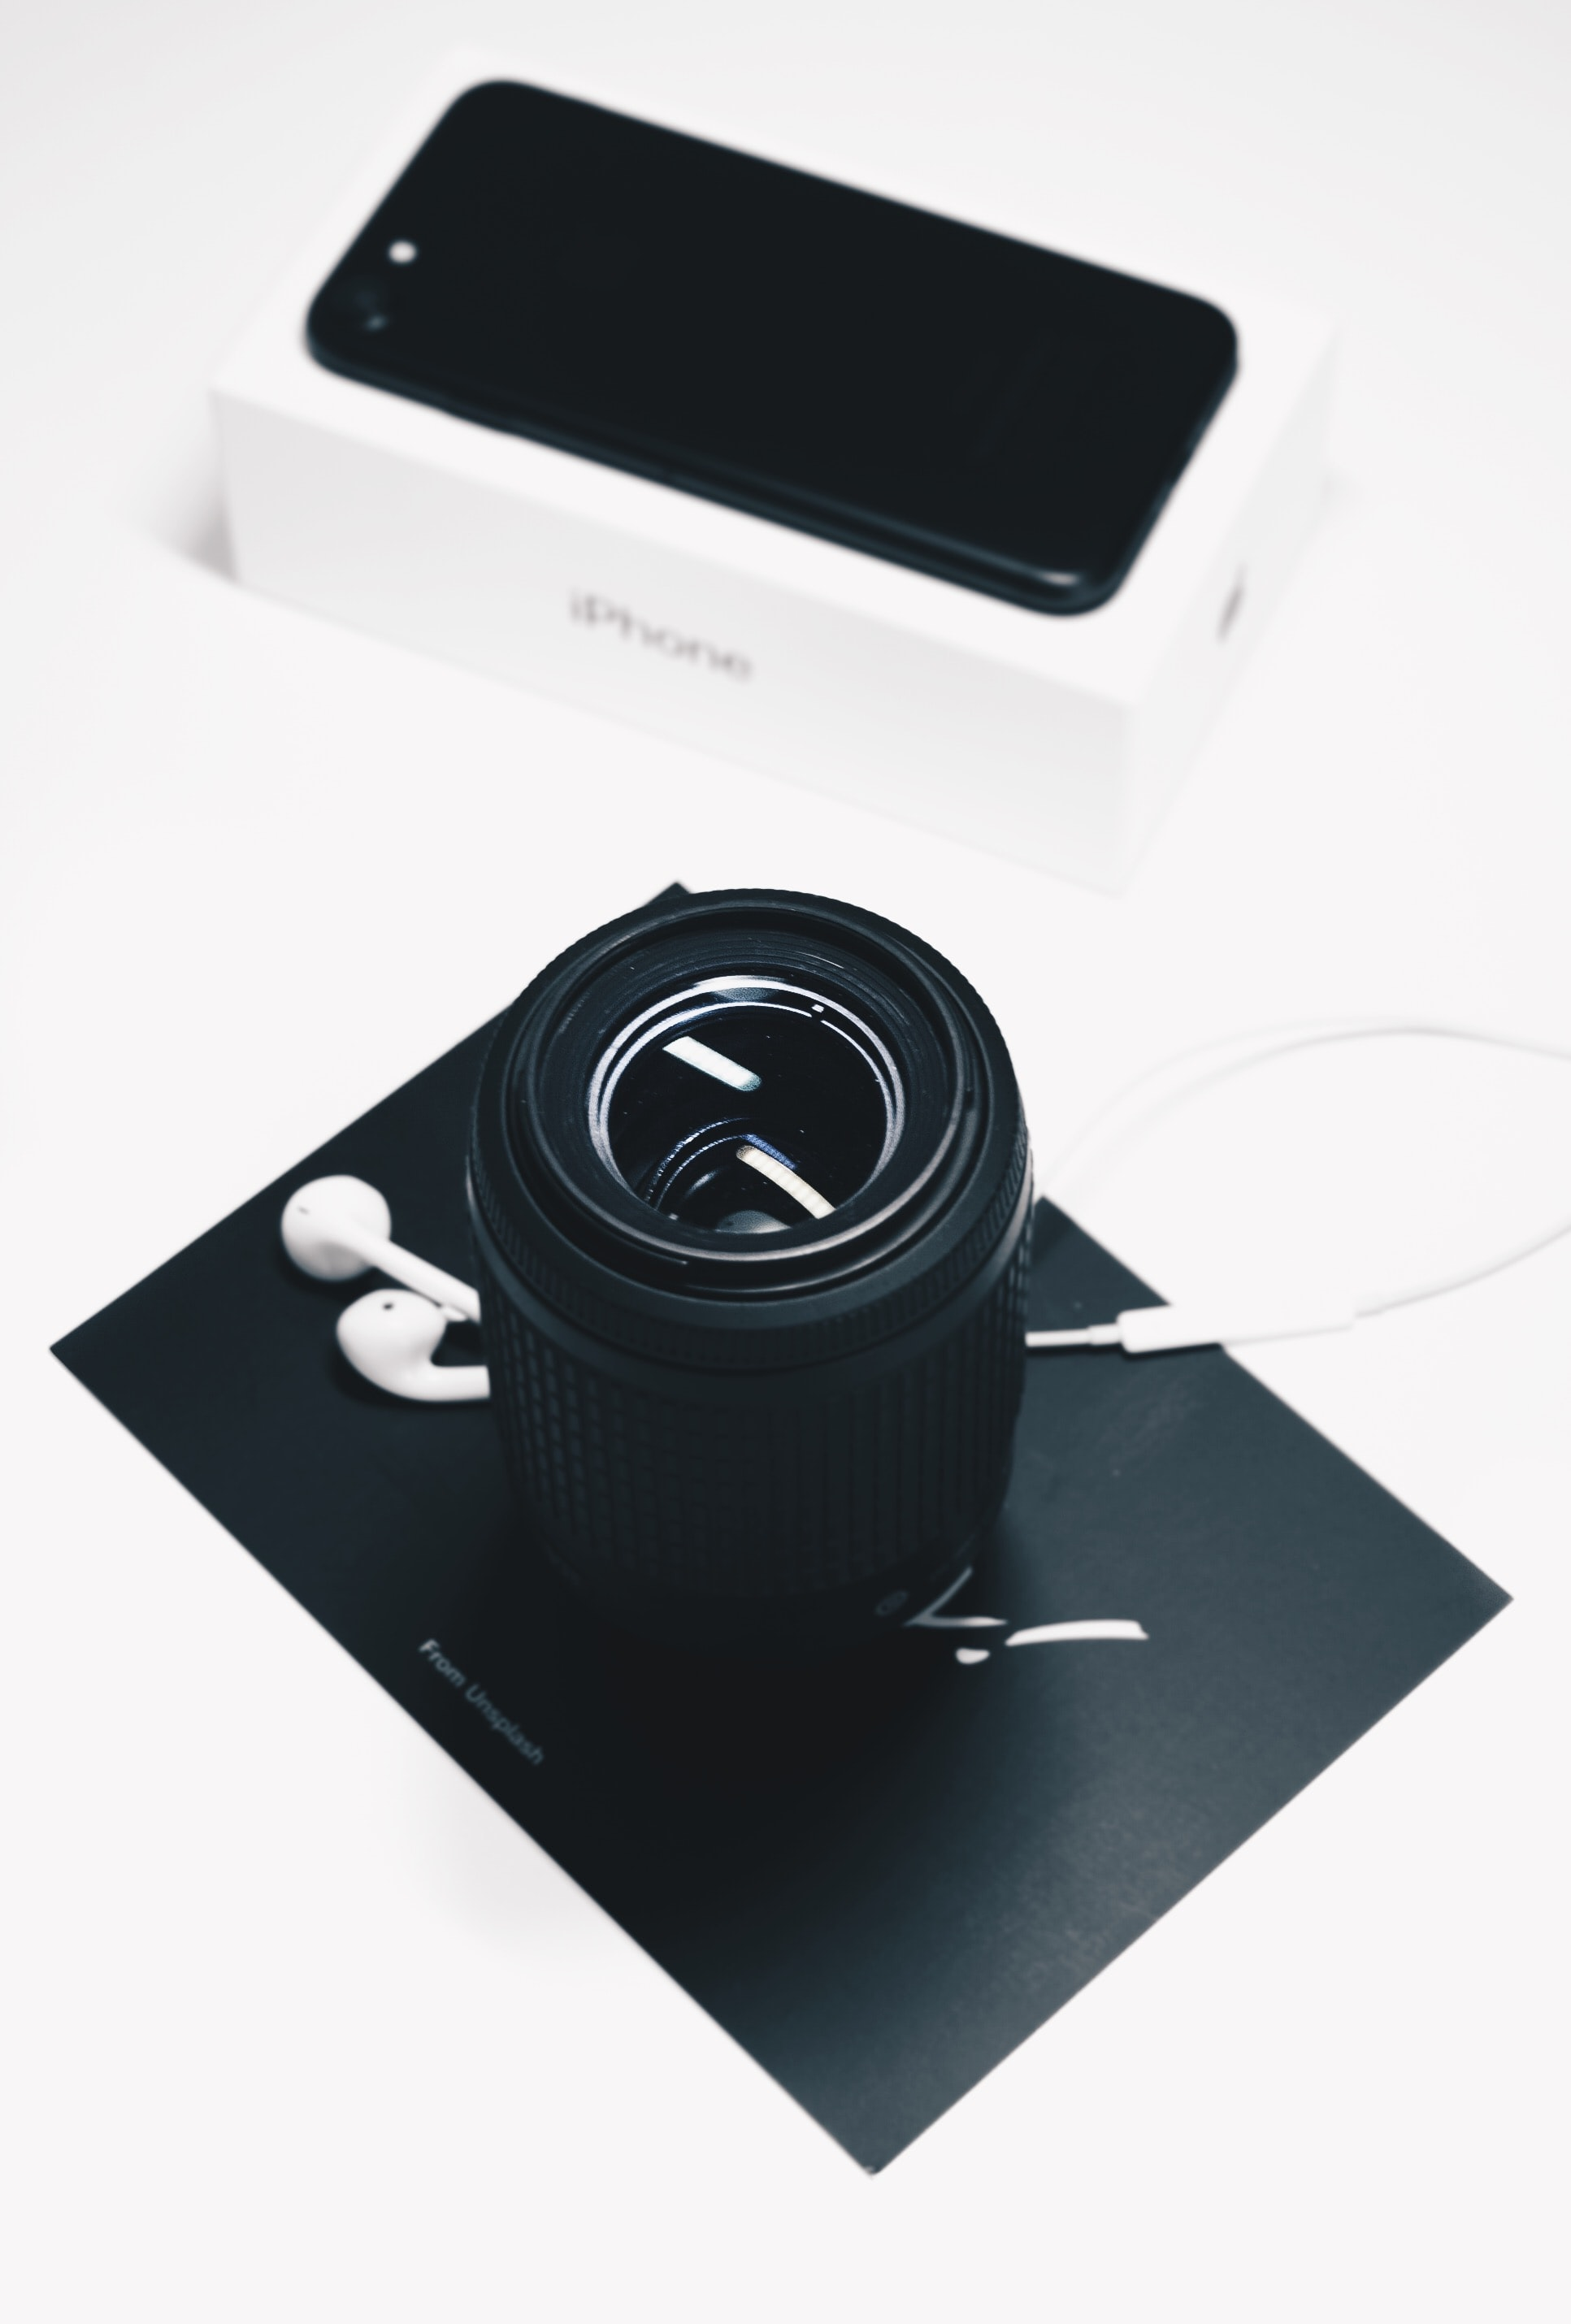 black zoom lens and iPhone box